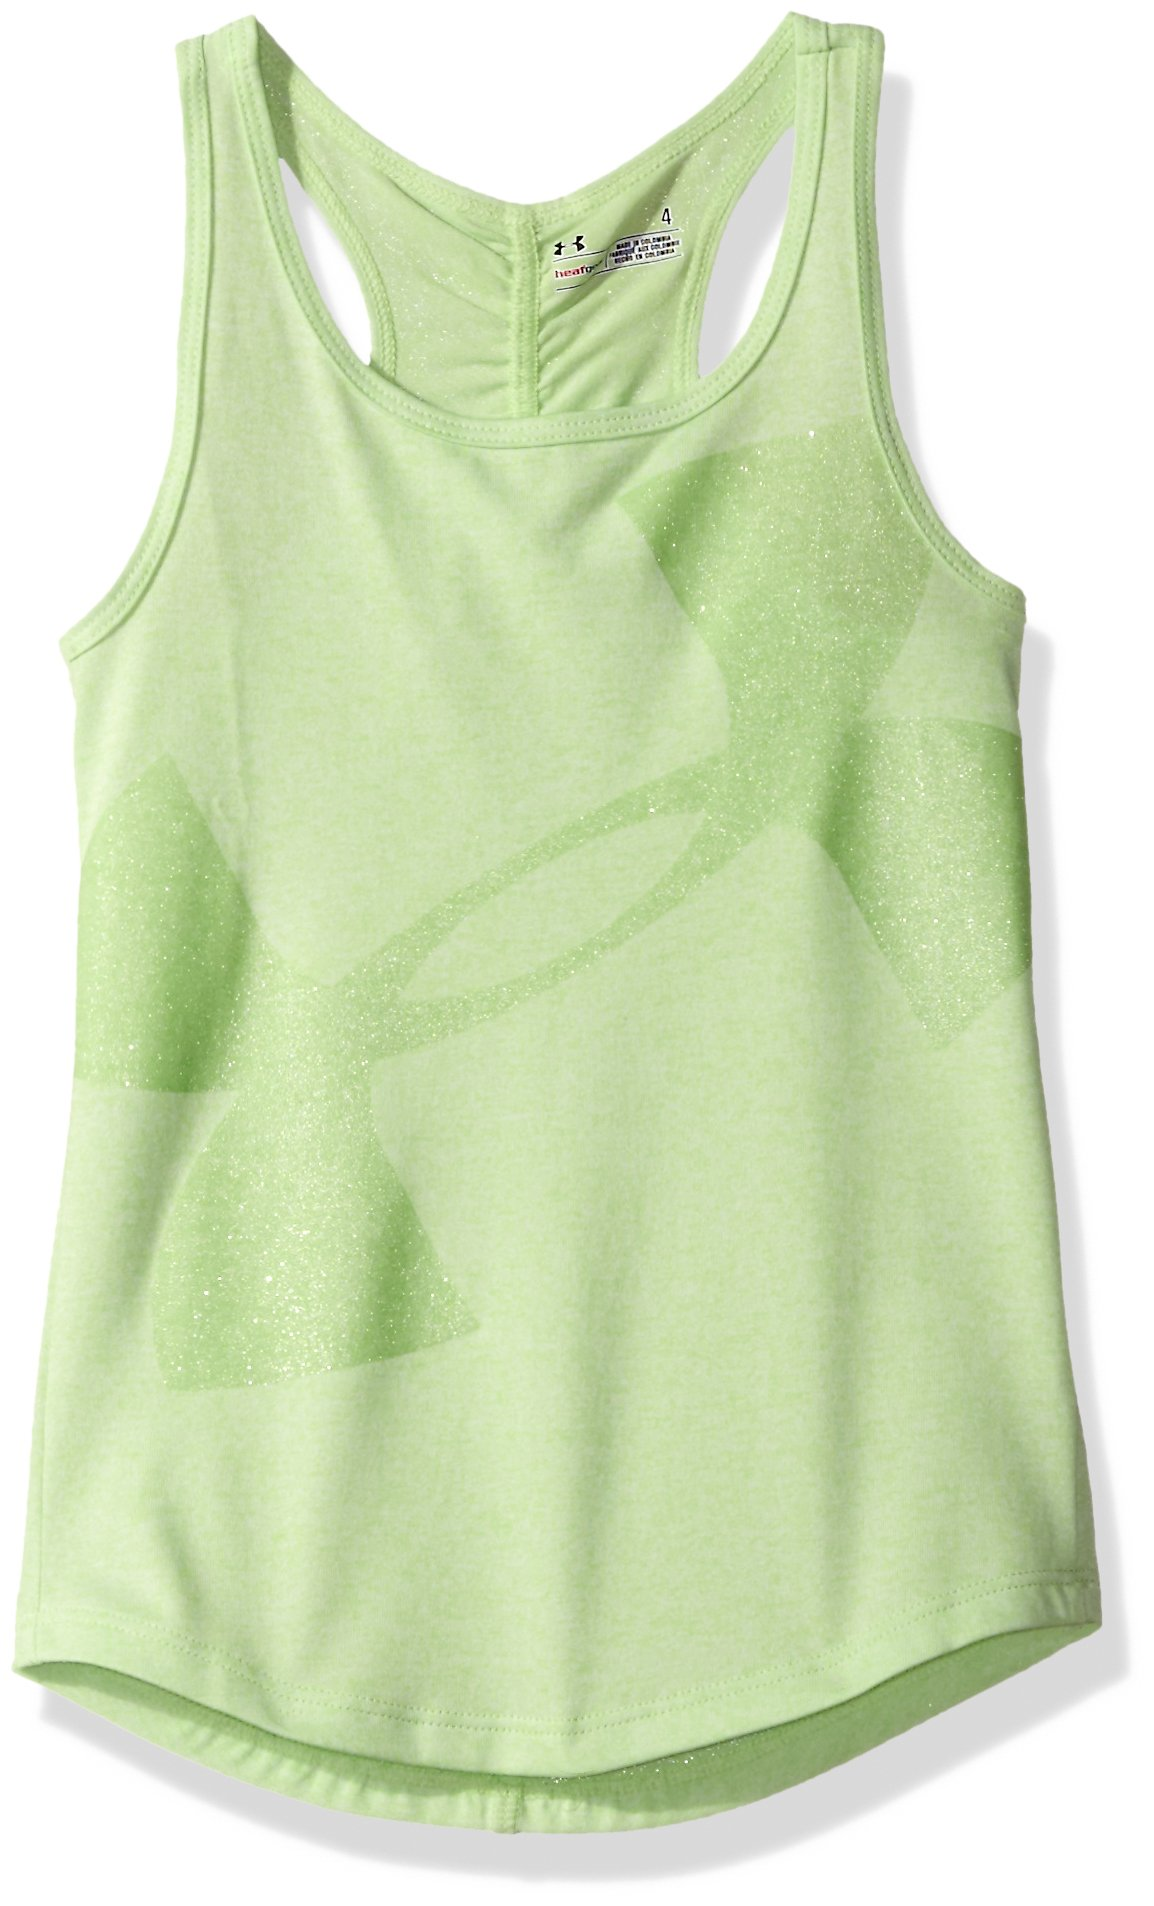 Under Armour Little Girls' Active Tank Tops, Summer Lime, 5